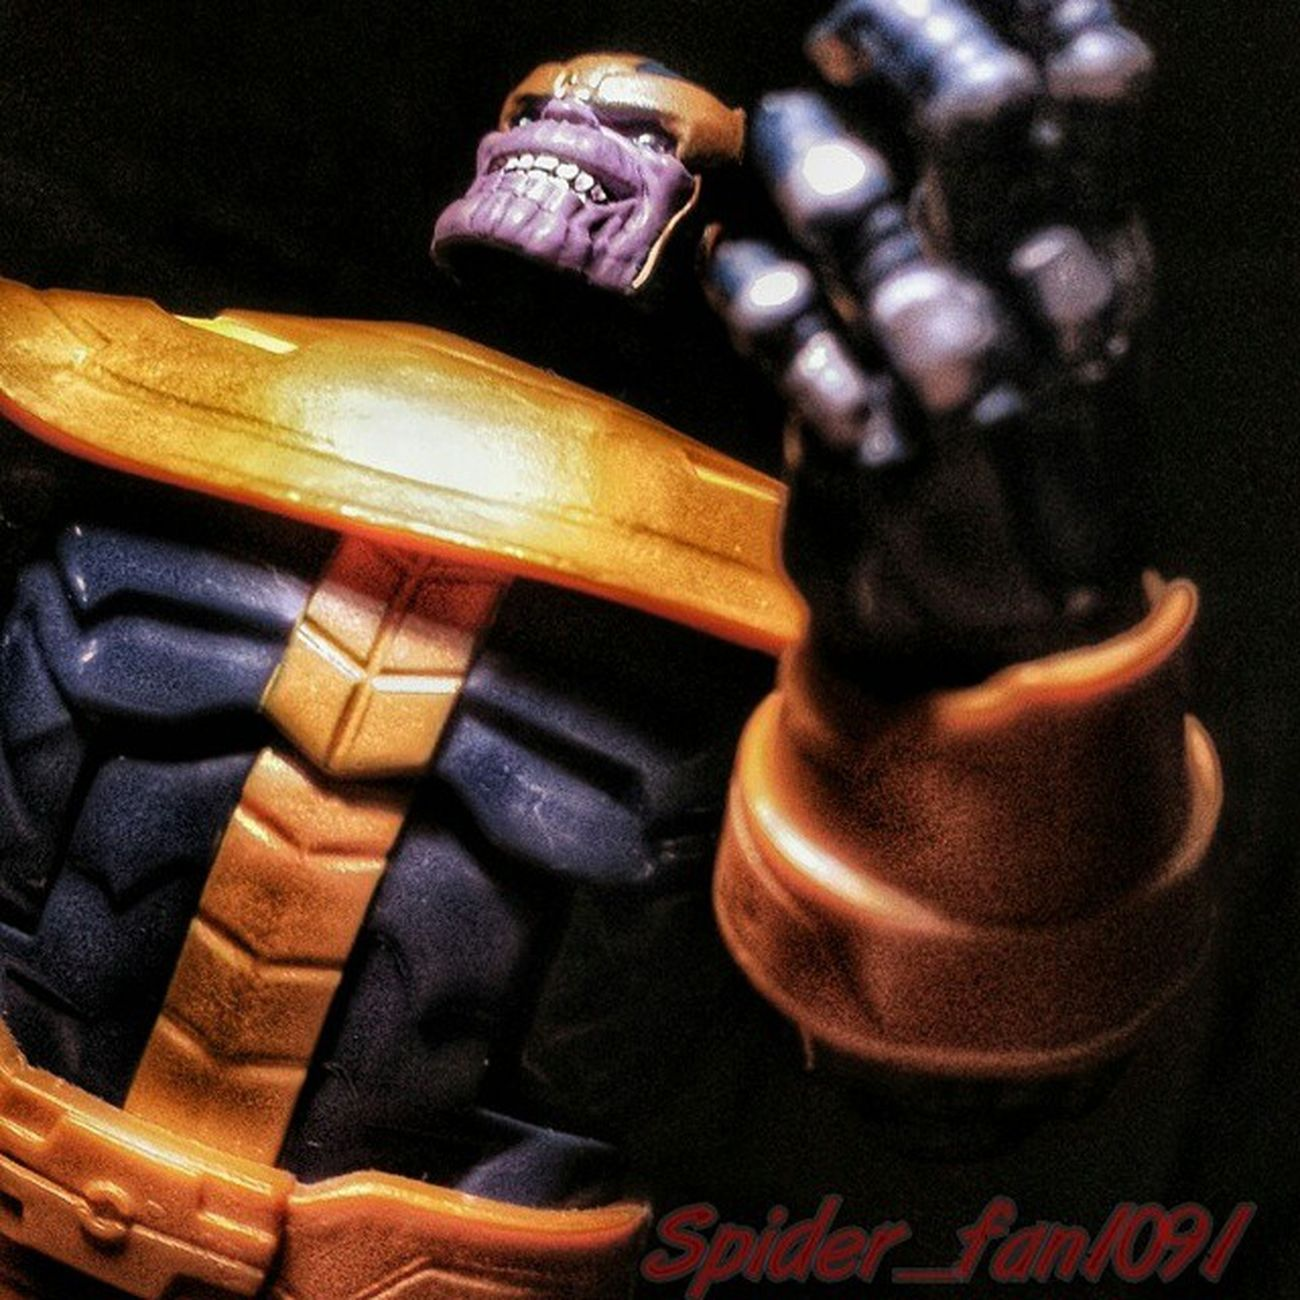 Marvel Toys Actionfigures Collectibles Marvellegends Thanos Toyfigures ToyPoses Toyphotography Toyelites Toyslagram Toyunion Toyartistry Toyartistry_elite Toyslagram_toyartistry_dual_feature Toysnapshot Toyboners Toys4Me Rebeltoysclub Toygroup_alliance Ata_dreadnoughts Anarchyalliance Toyphotogallery Toysrmydrug Toys4life